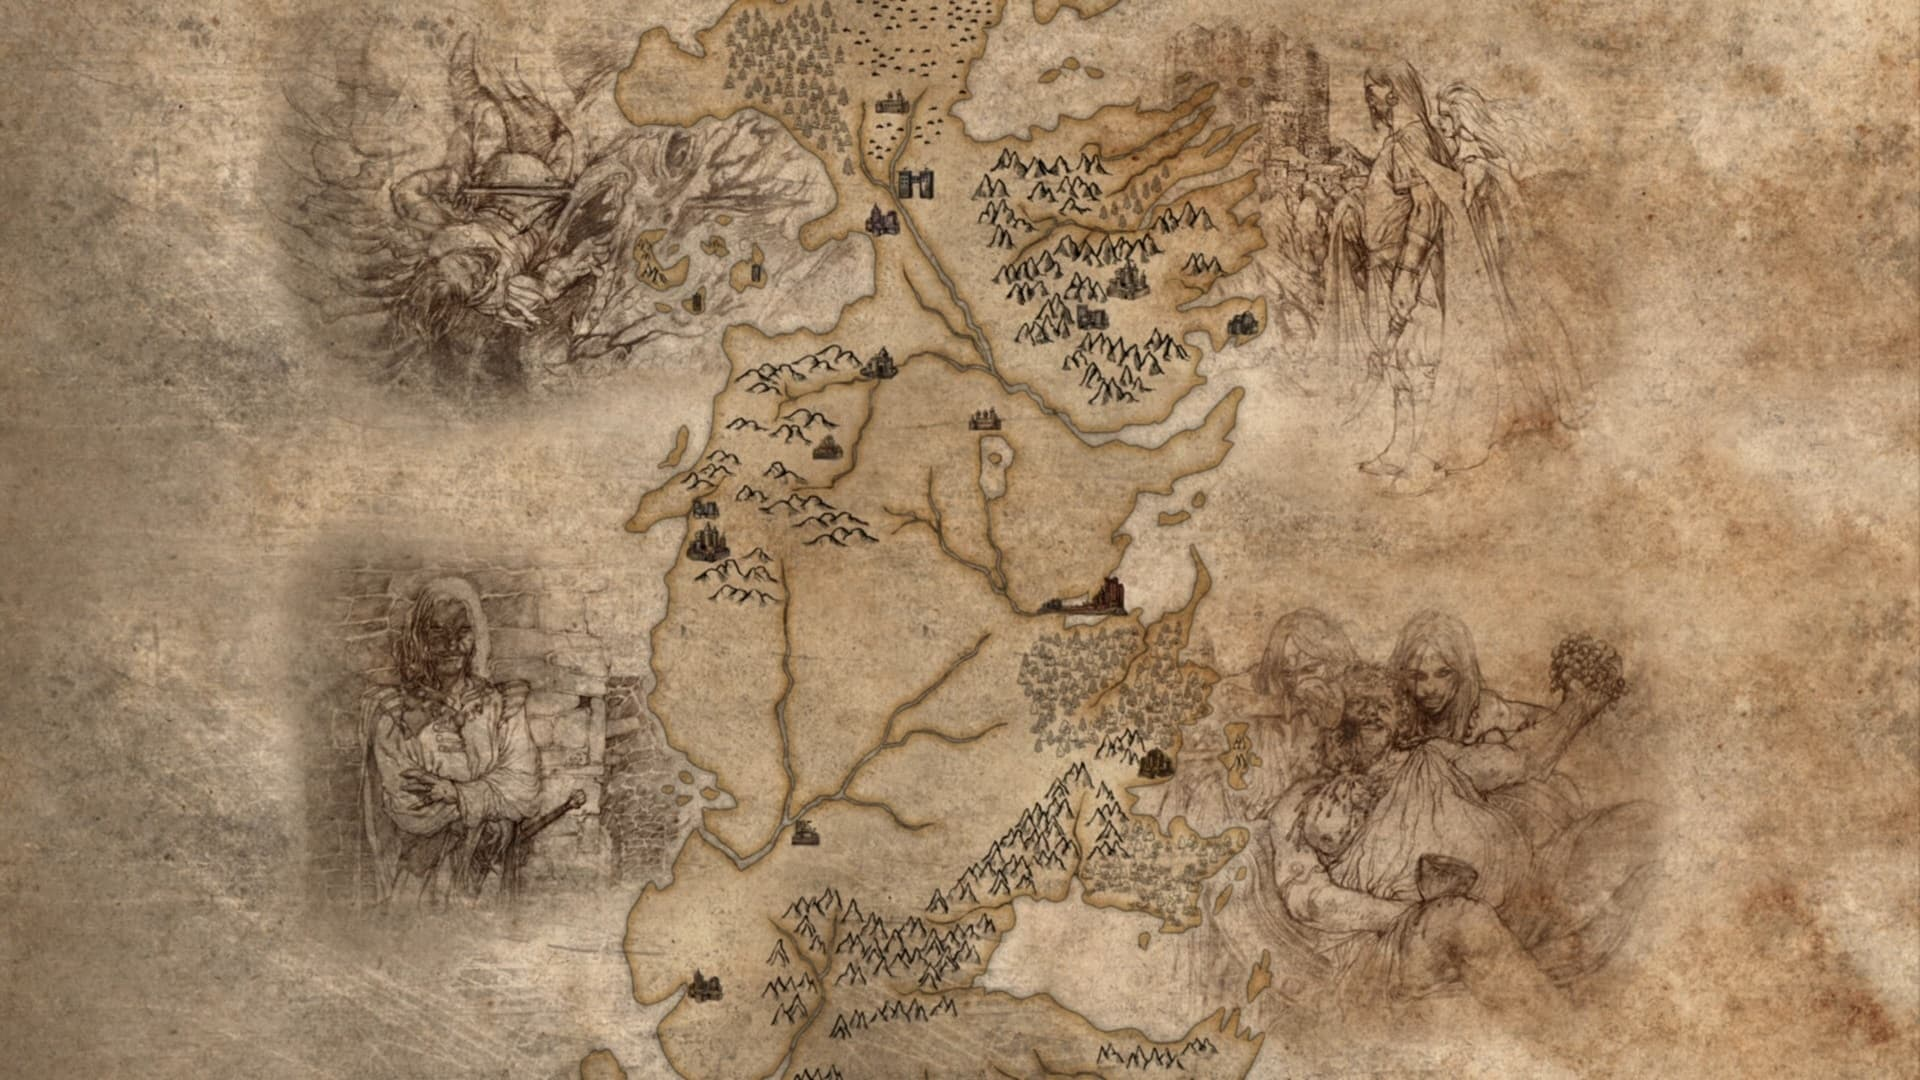 Game of Thrones Season 0 :Episode 57  Histories & Lore: The Age of Heroes